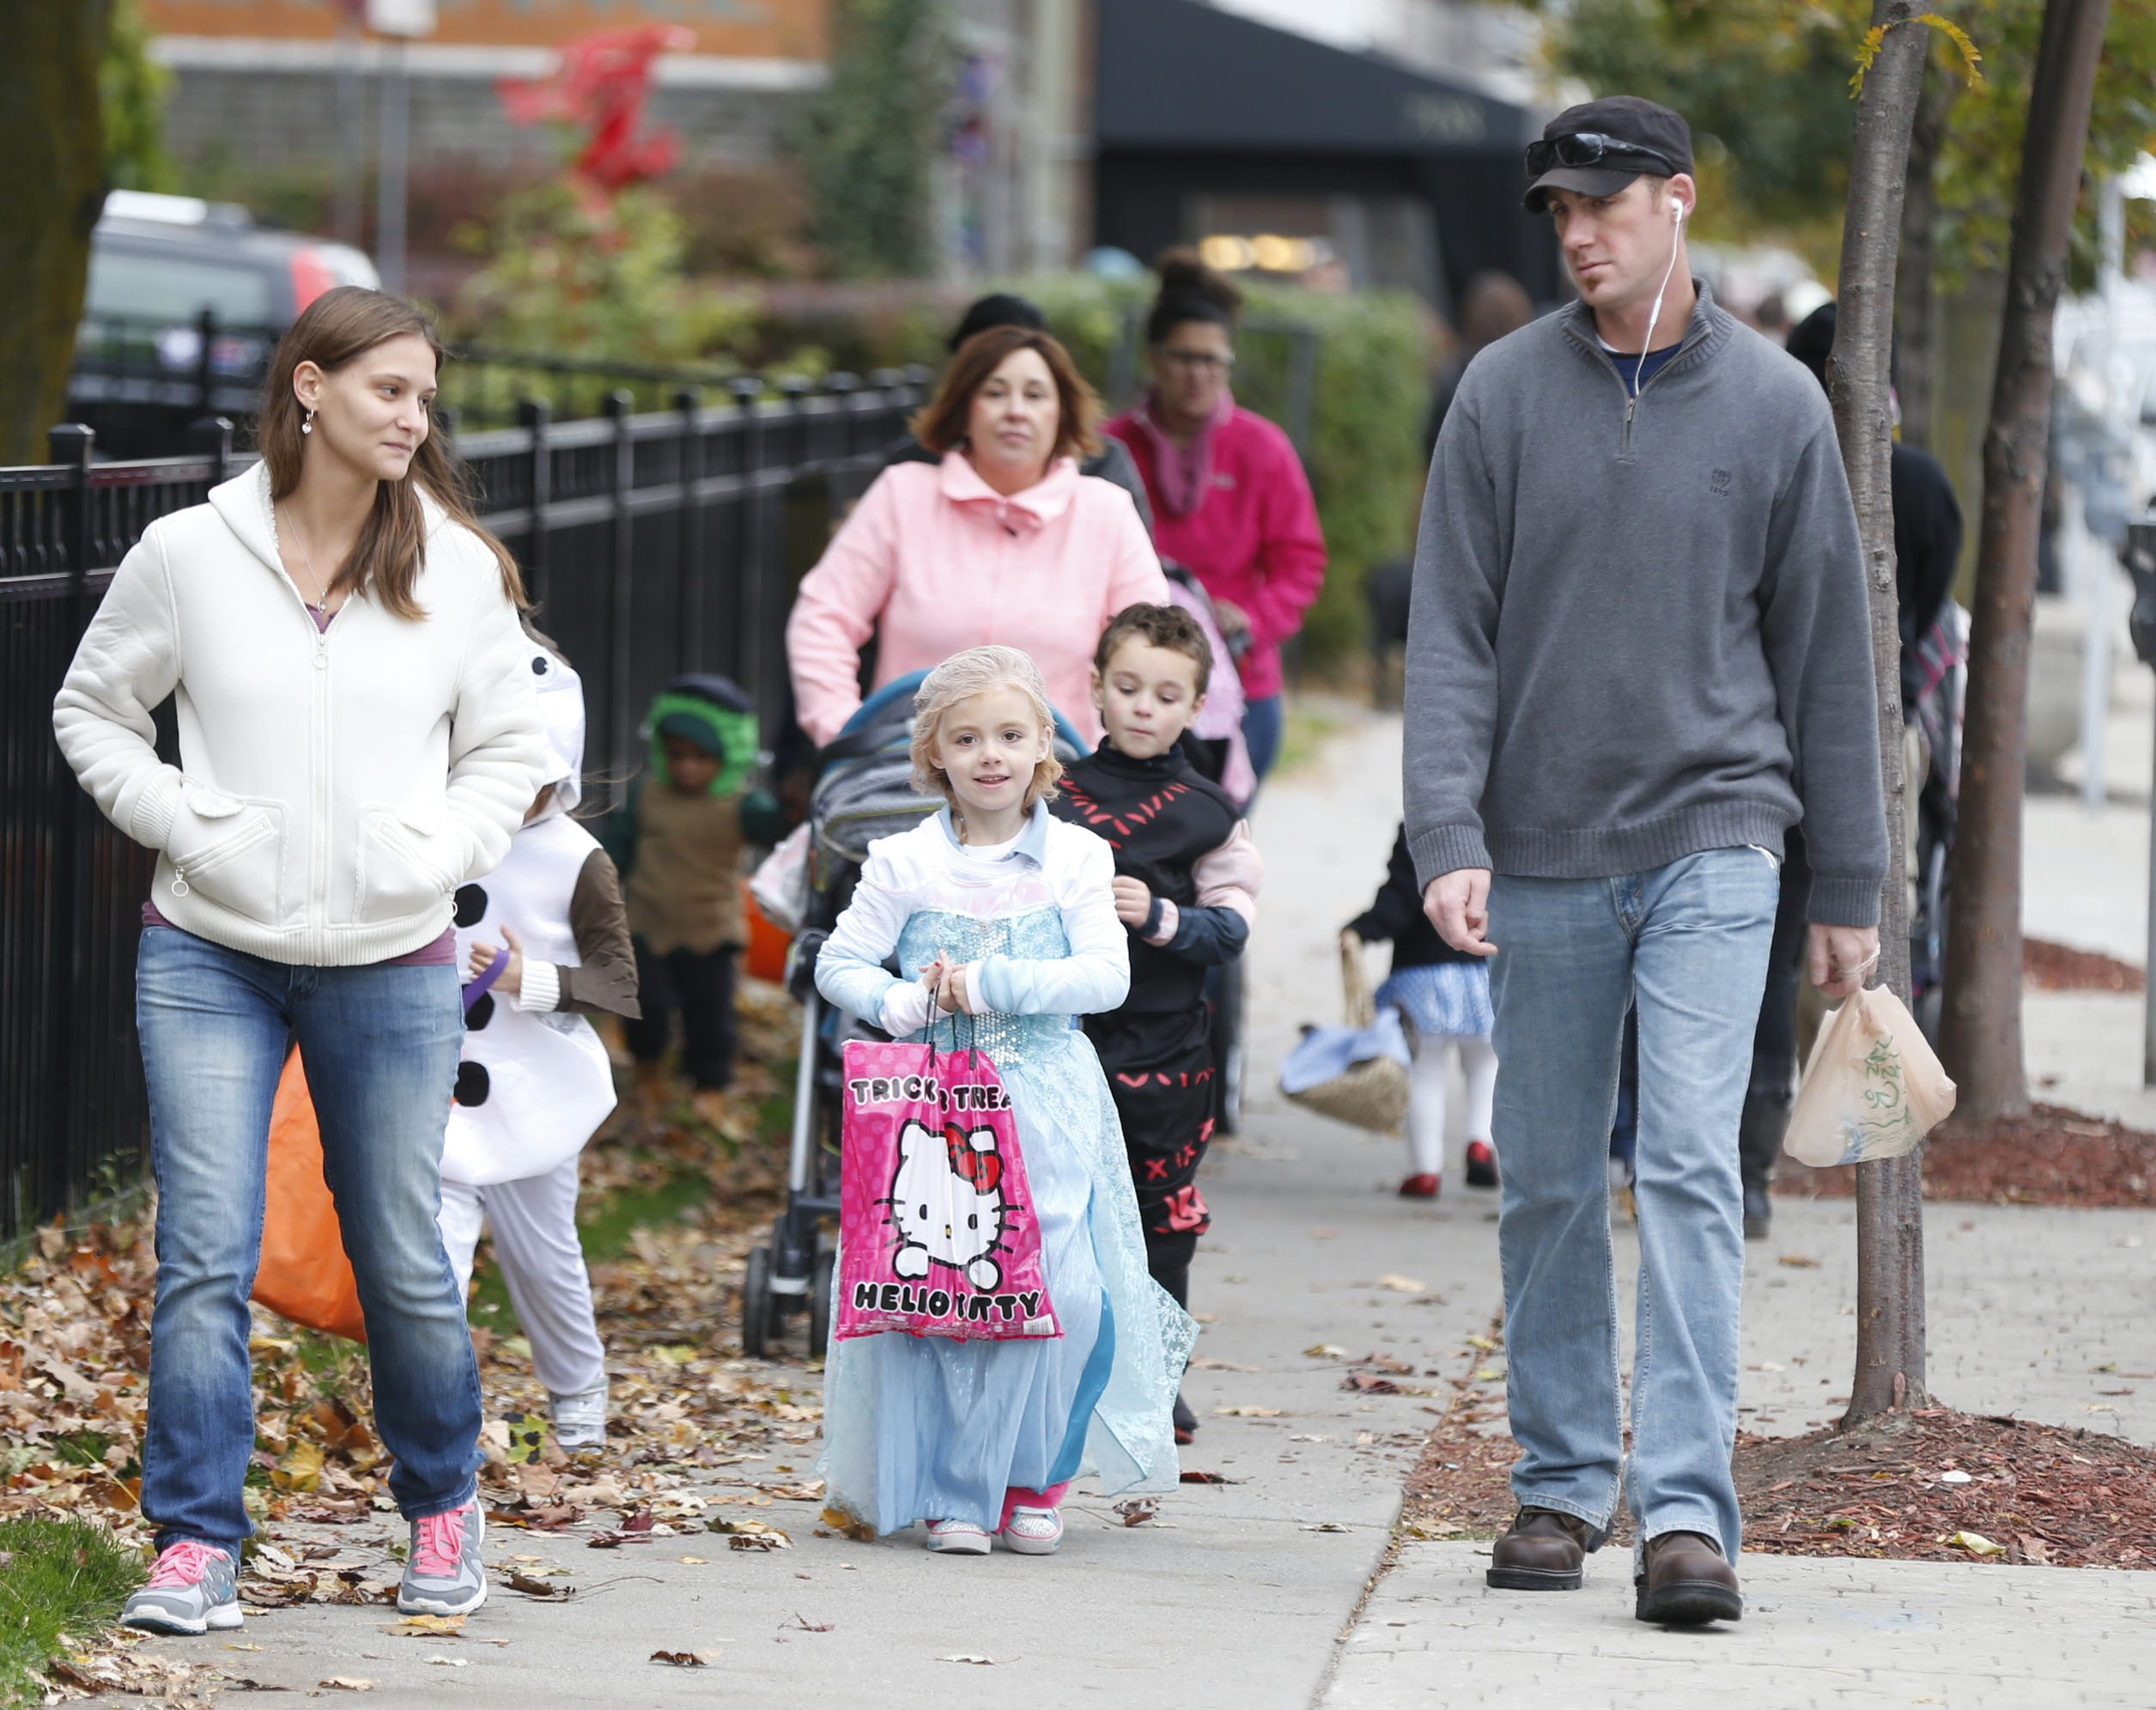 Today on Elmwood Ave. kids getting halloween treats from businesses in a safe trick or treat event sponsored by Elmwood Village Association on Sunday, Oct. 26, 2014.  (Robert Kirkham/Buffalo News)